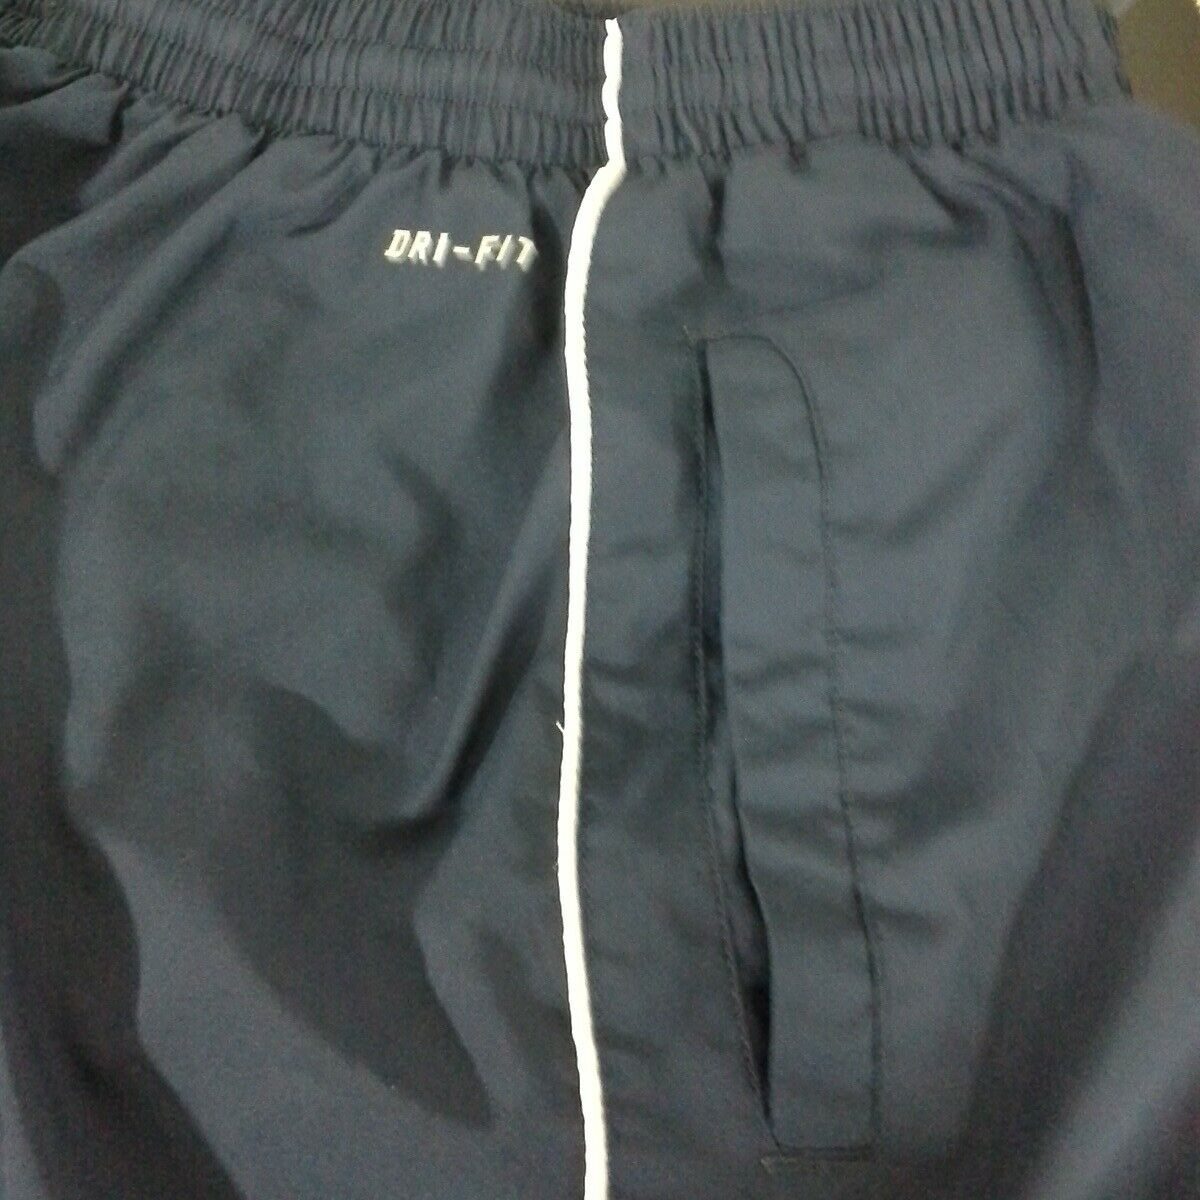 Nike womens pants Size S Black White side piping Pull-on Elastic waist Zip ankle